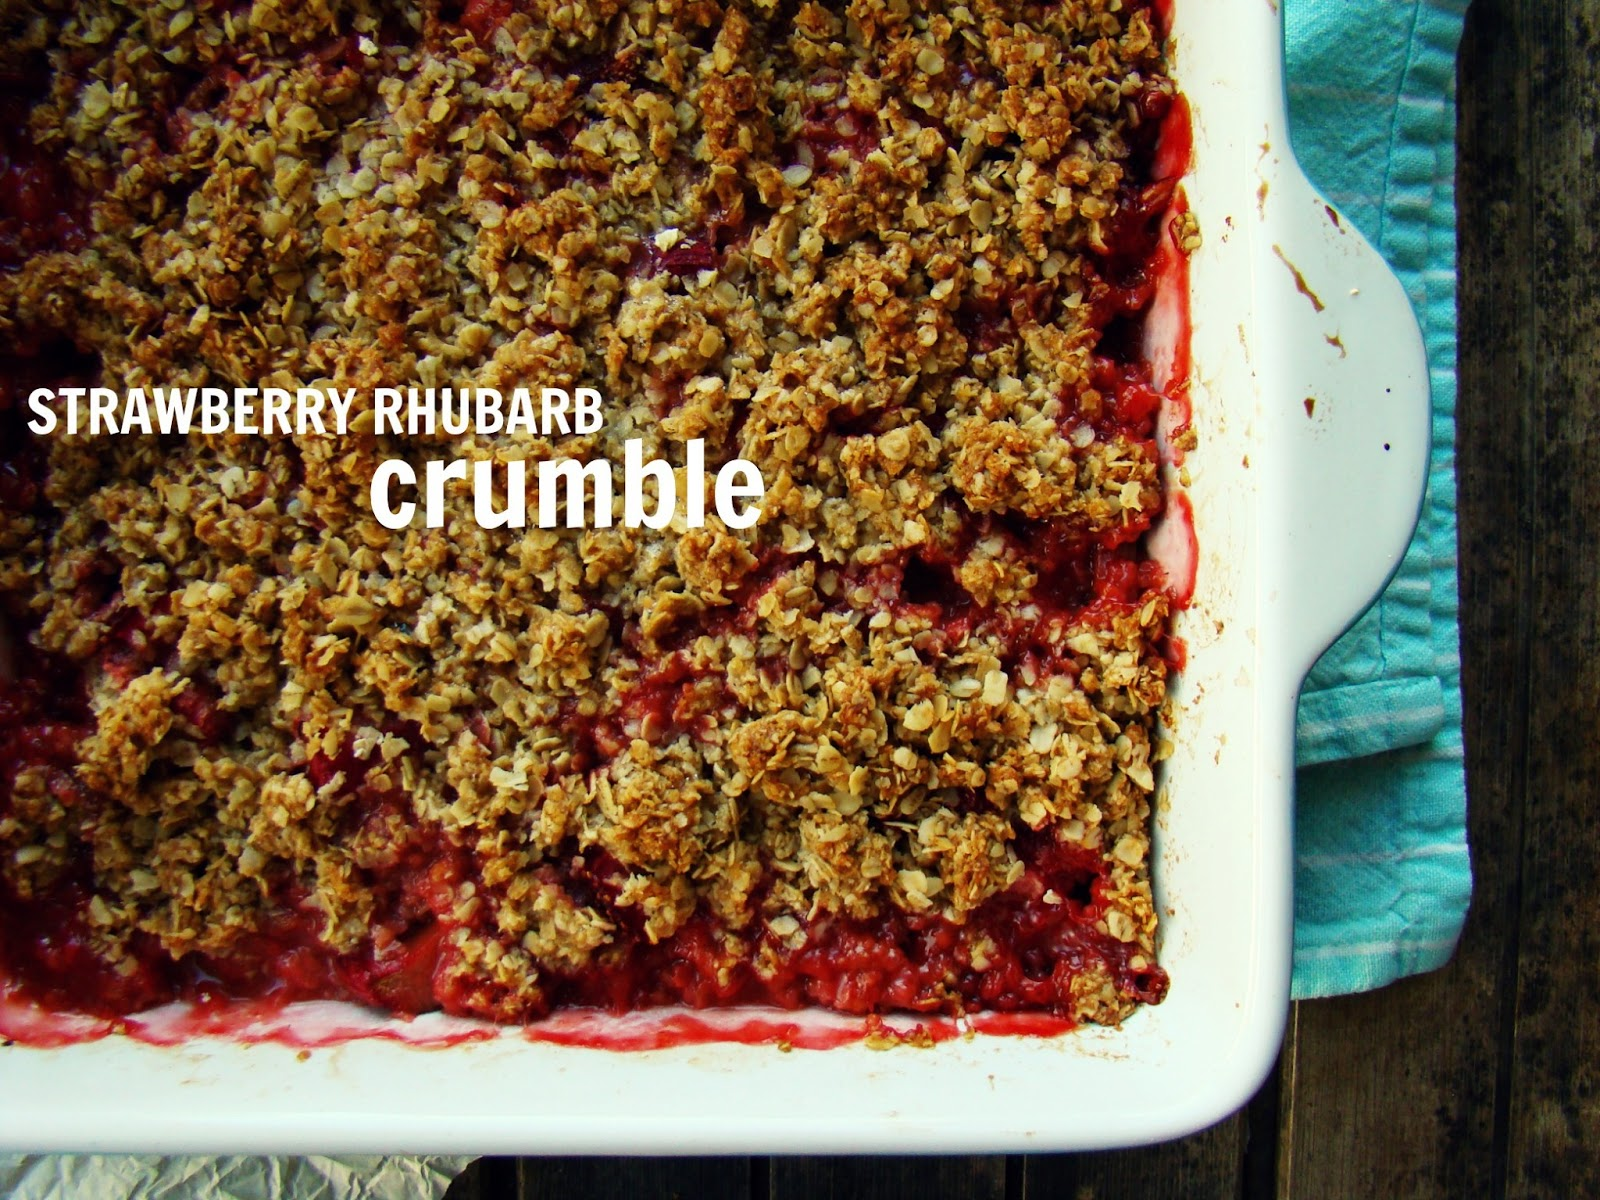 Family Feedbag: Strawberry rhubarb crumble (not rhubarb strawberry)